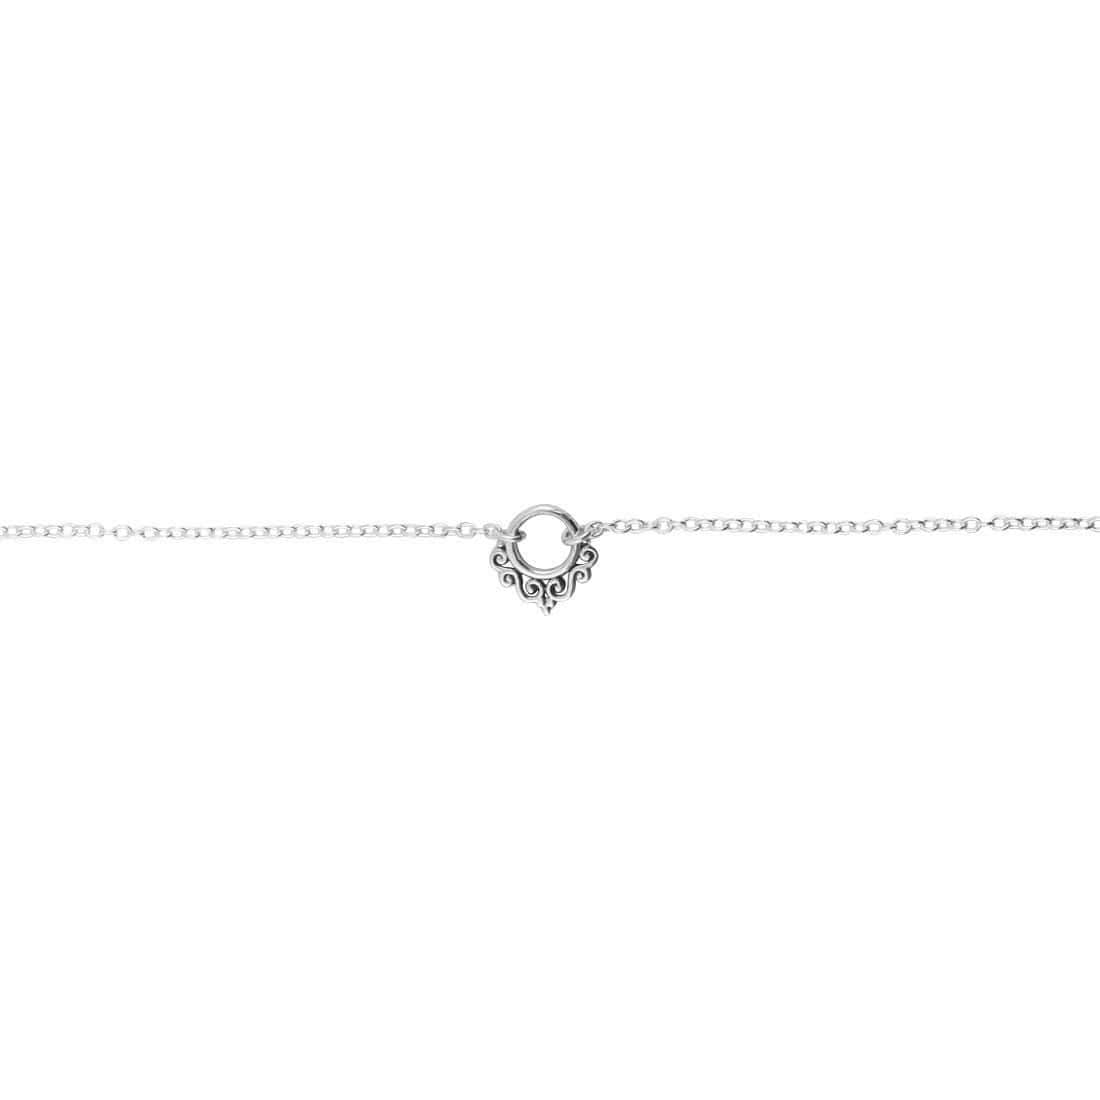 Midsummer Star Anklet Dainty Mhendhi Archway Anklet